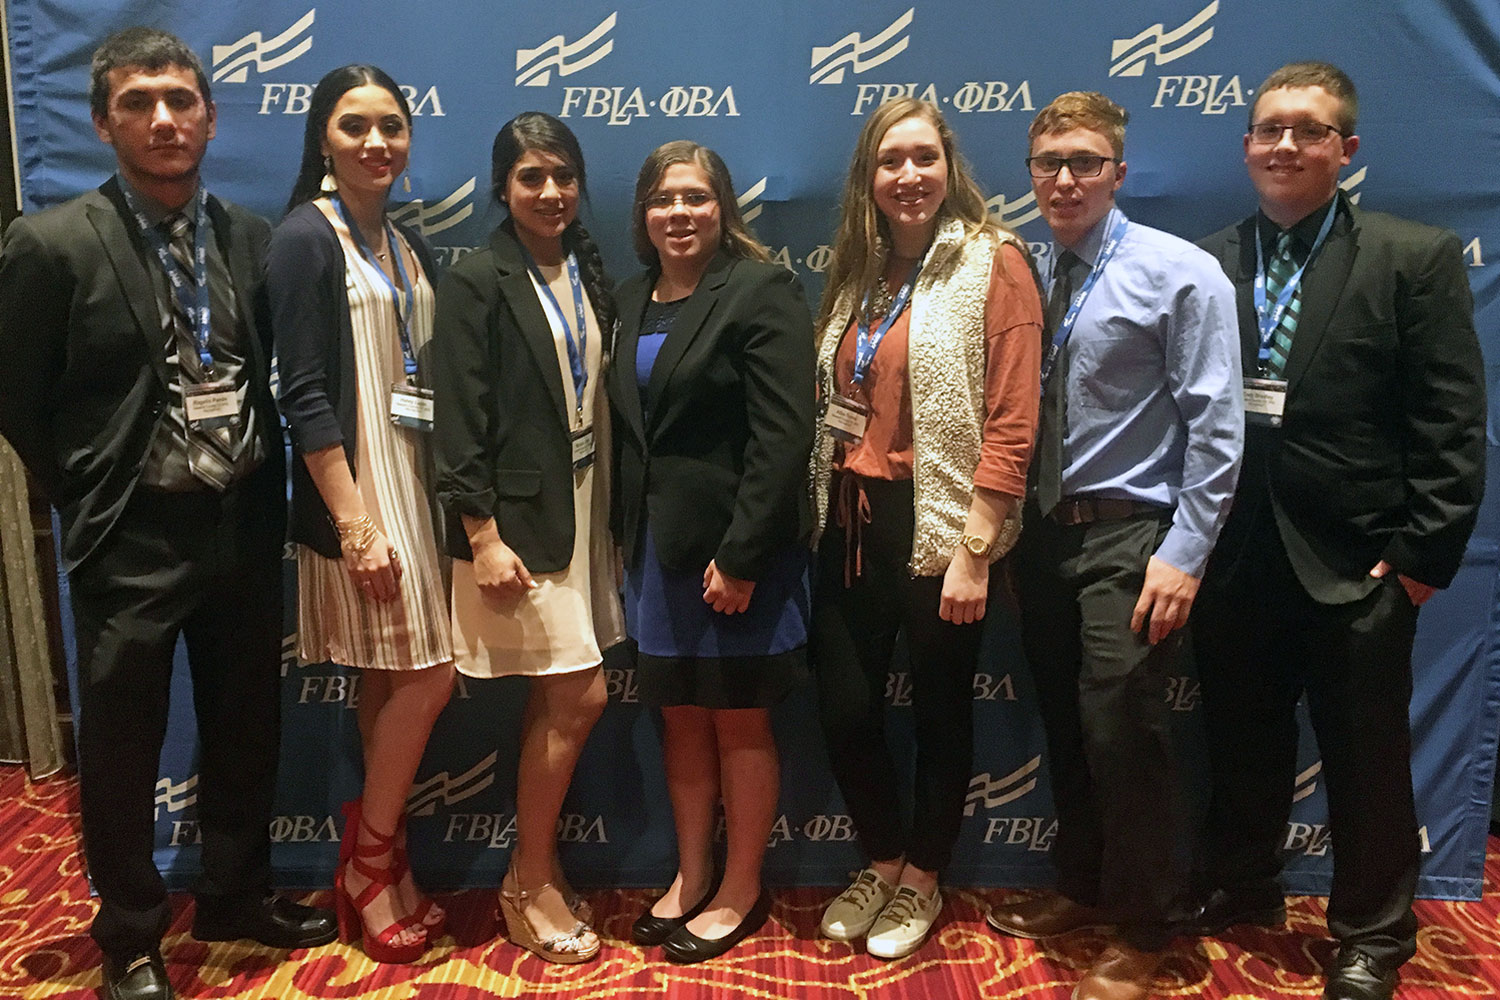 SCCC's business club, Phi Beta Lambda attended the first ever PBL Career Connections Conference in New York City. Featured left to right are the PBL members who attended the conference. Rogelio Pando, Haley Lujan, Miriam Lima, Mariah Behrns, Alba Torres, Bryce Minor, and Cody Bradley.